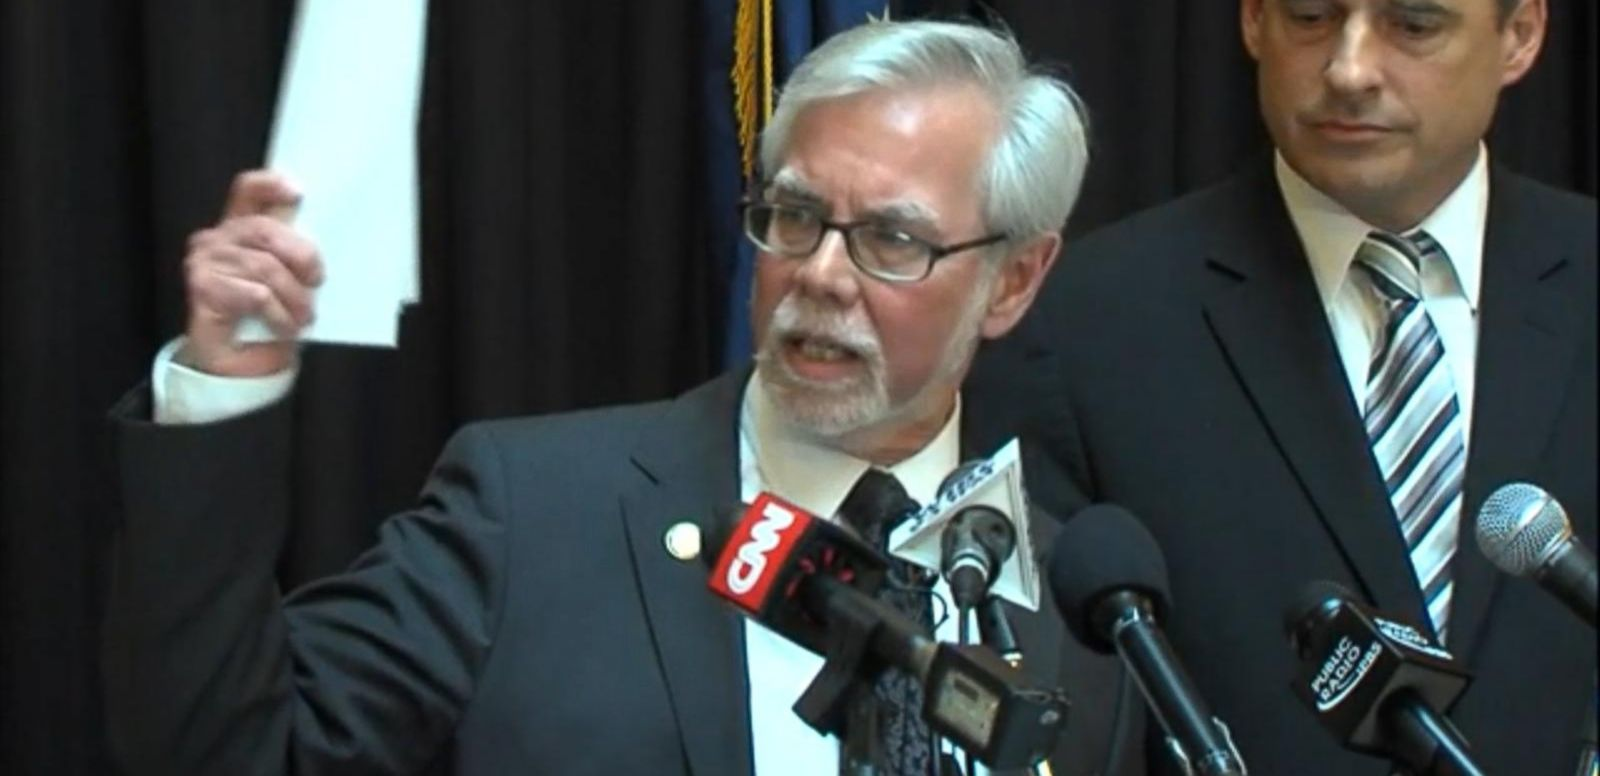 VIDEO: Indiana Democrats on Religious Freedom Controversy: 'Repeal This Law'